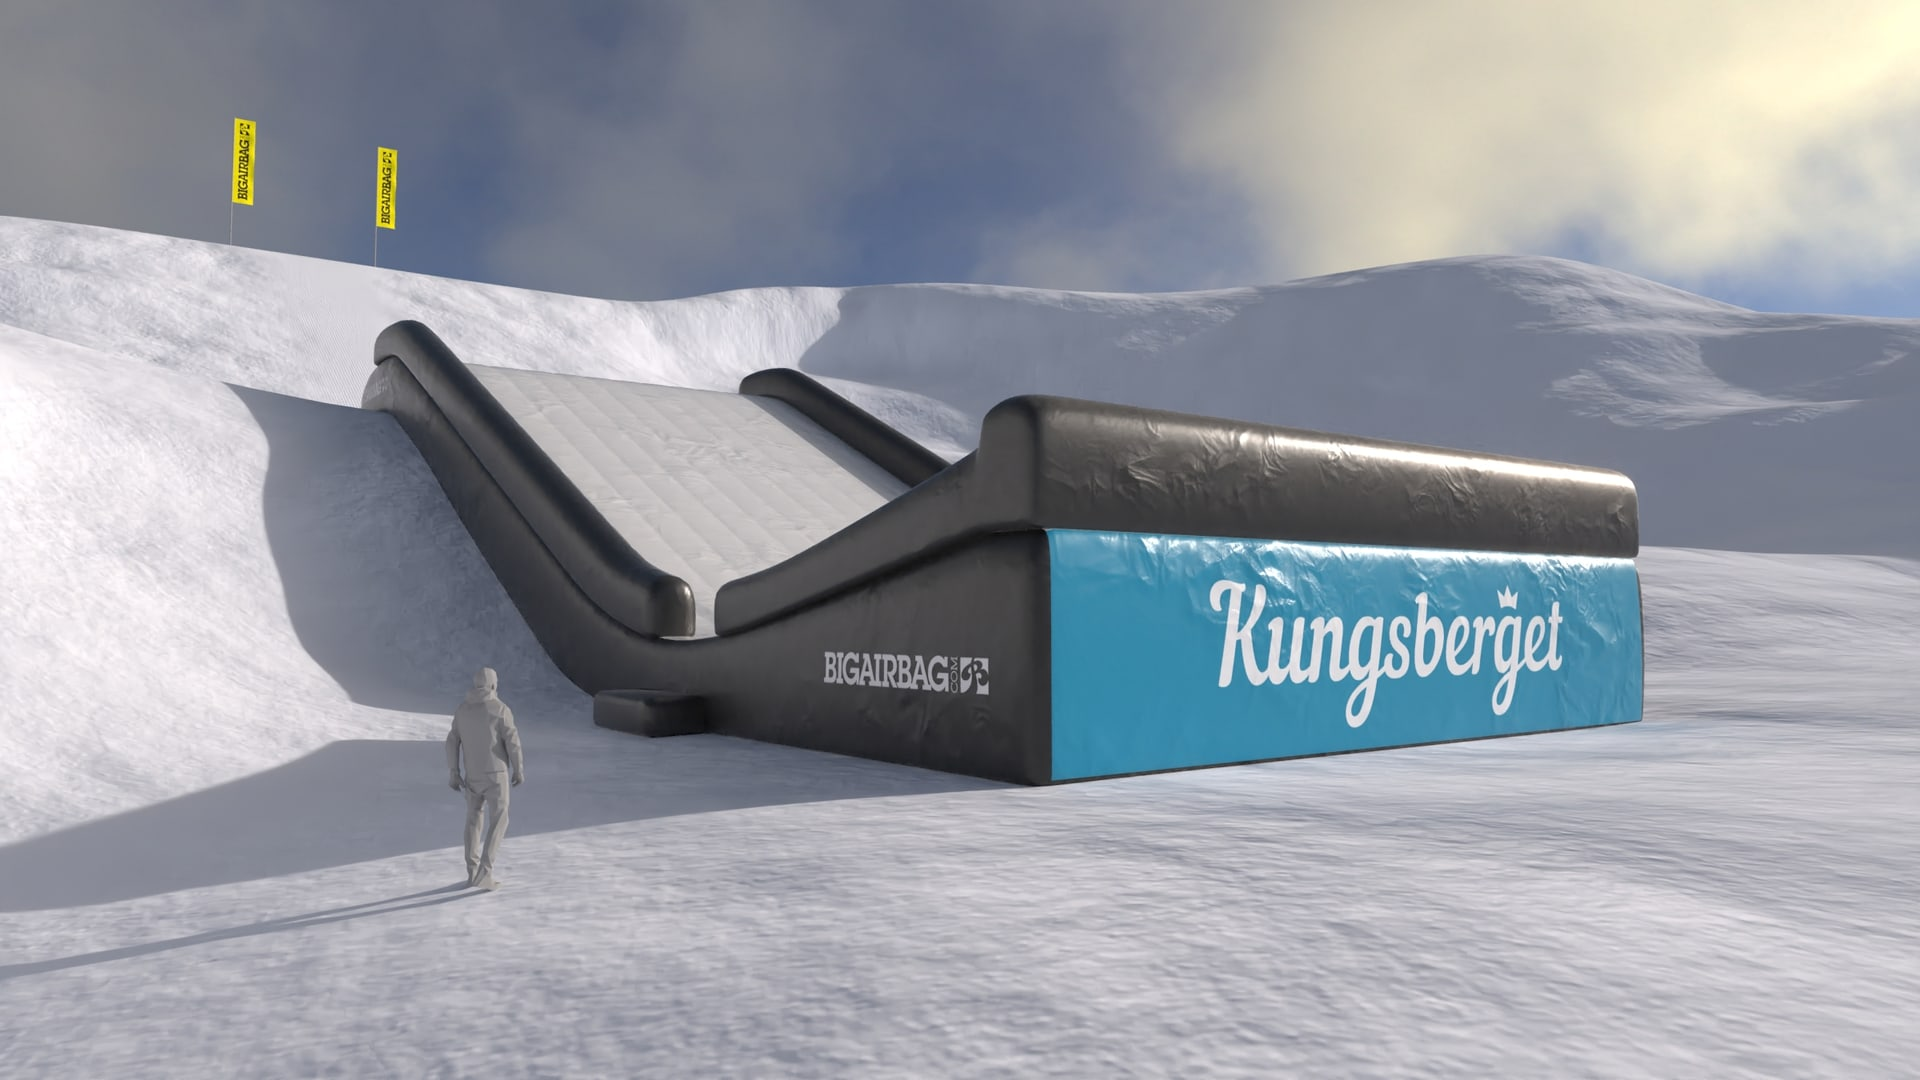 Landing airbag for ski resorts